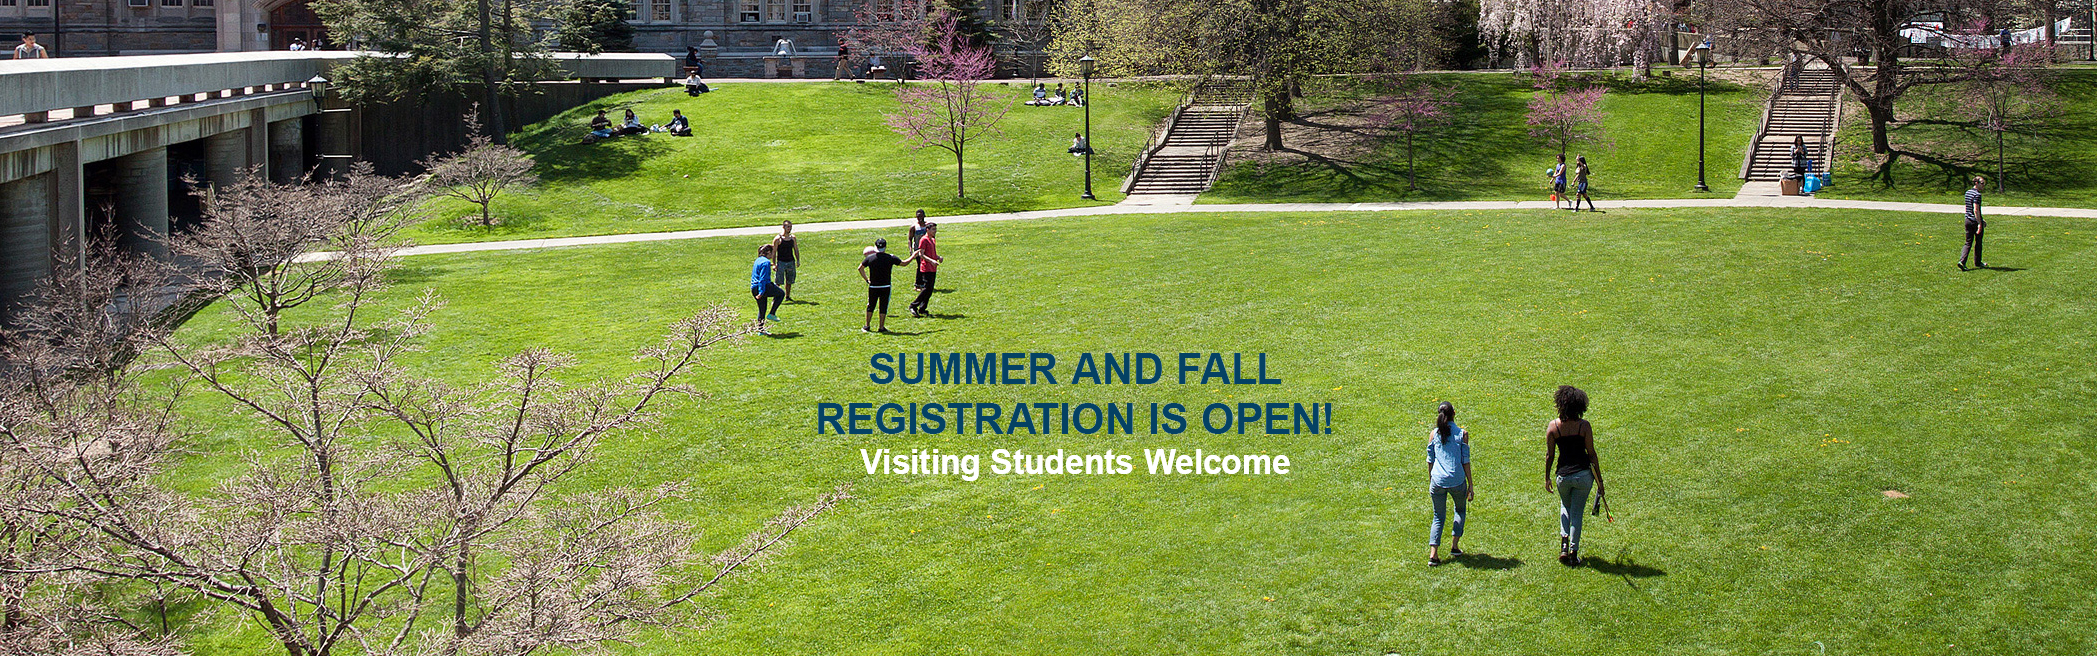 Summer Registration 2019